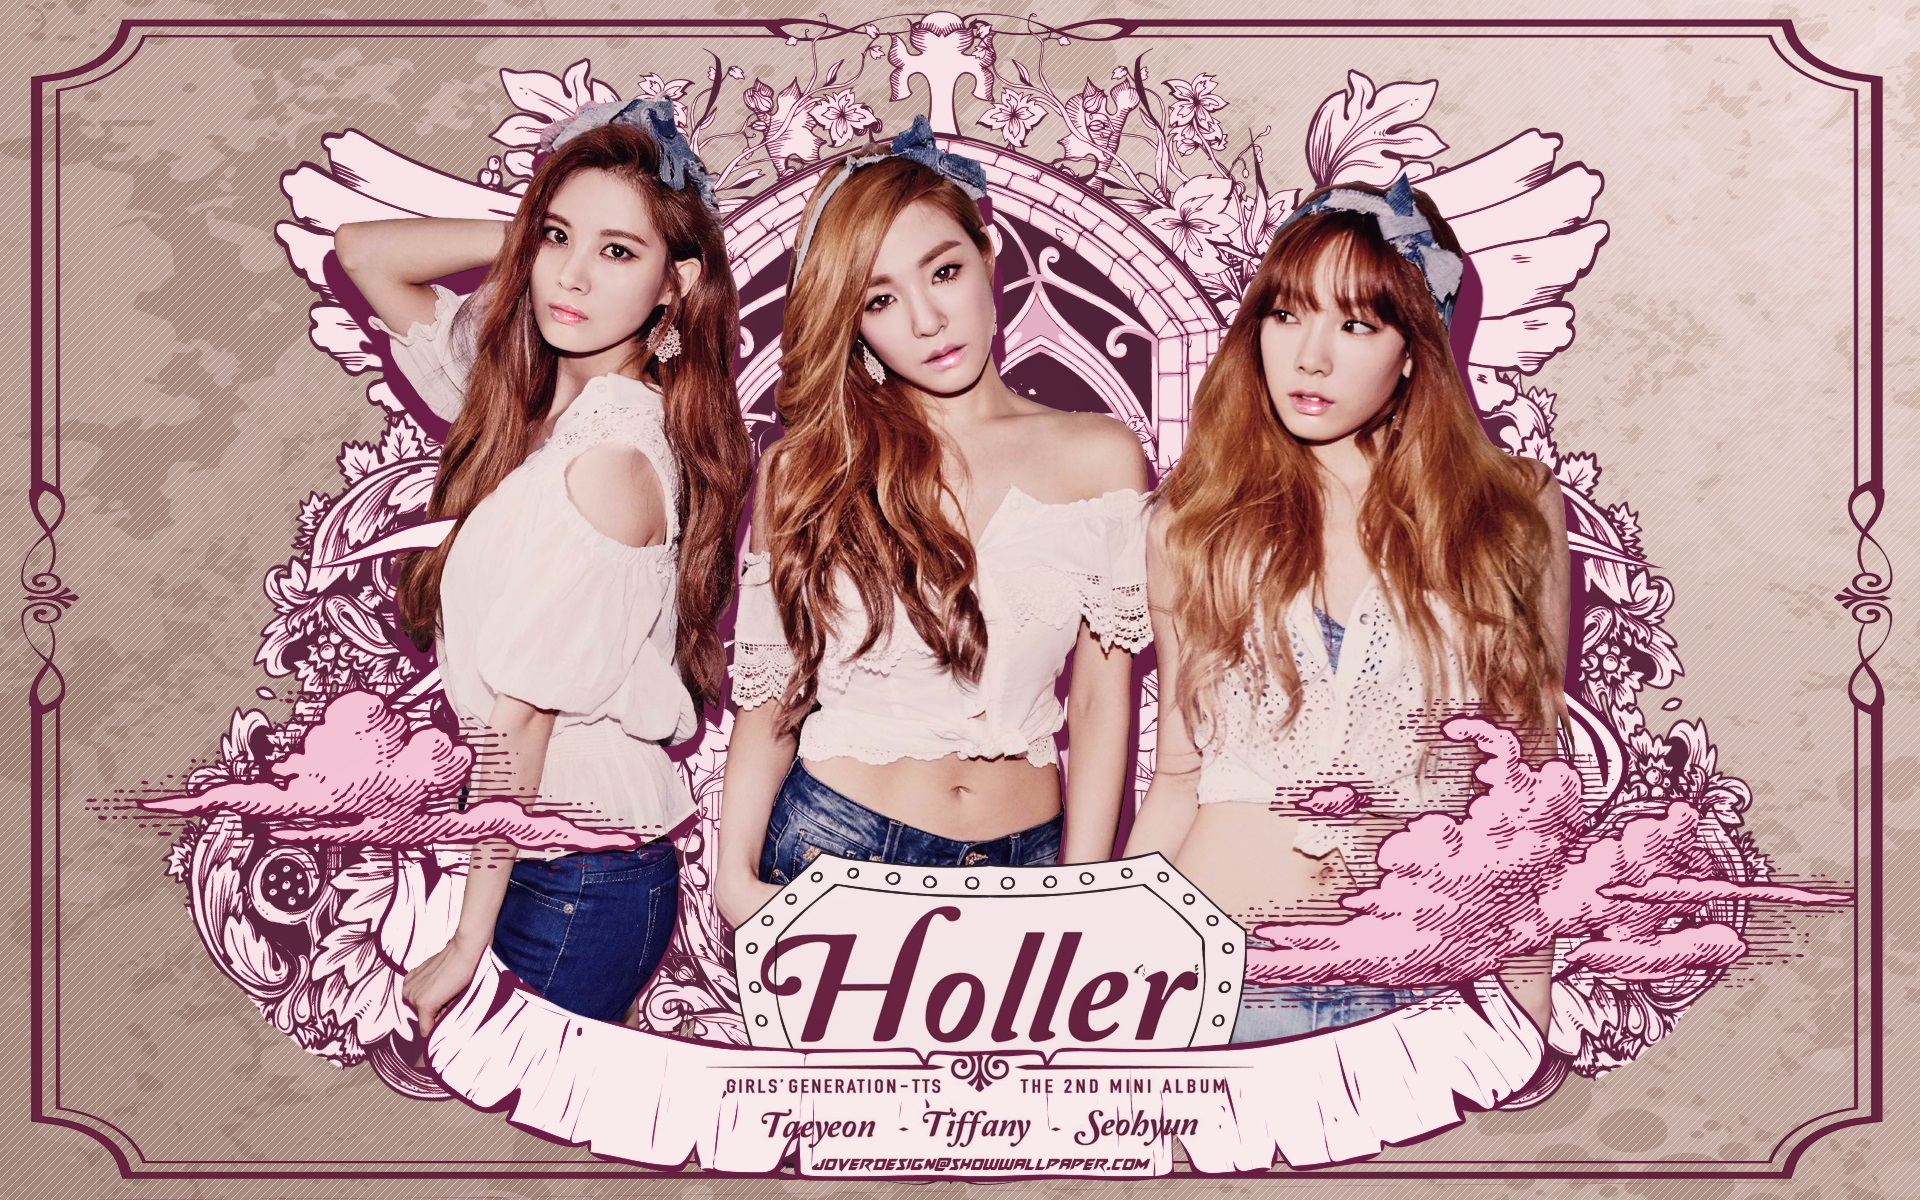 Girls Wallpaper Pack Girls Generation Tts Images Taetiseo Holler Hd Wallpaper